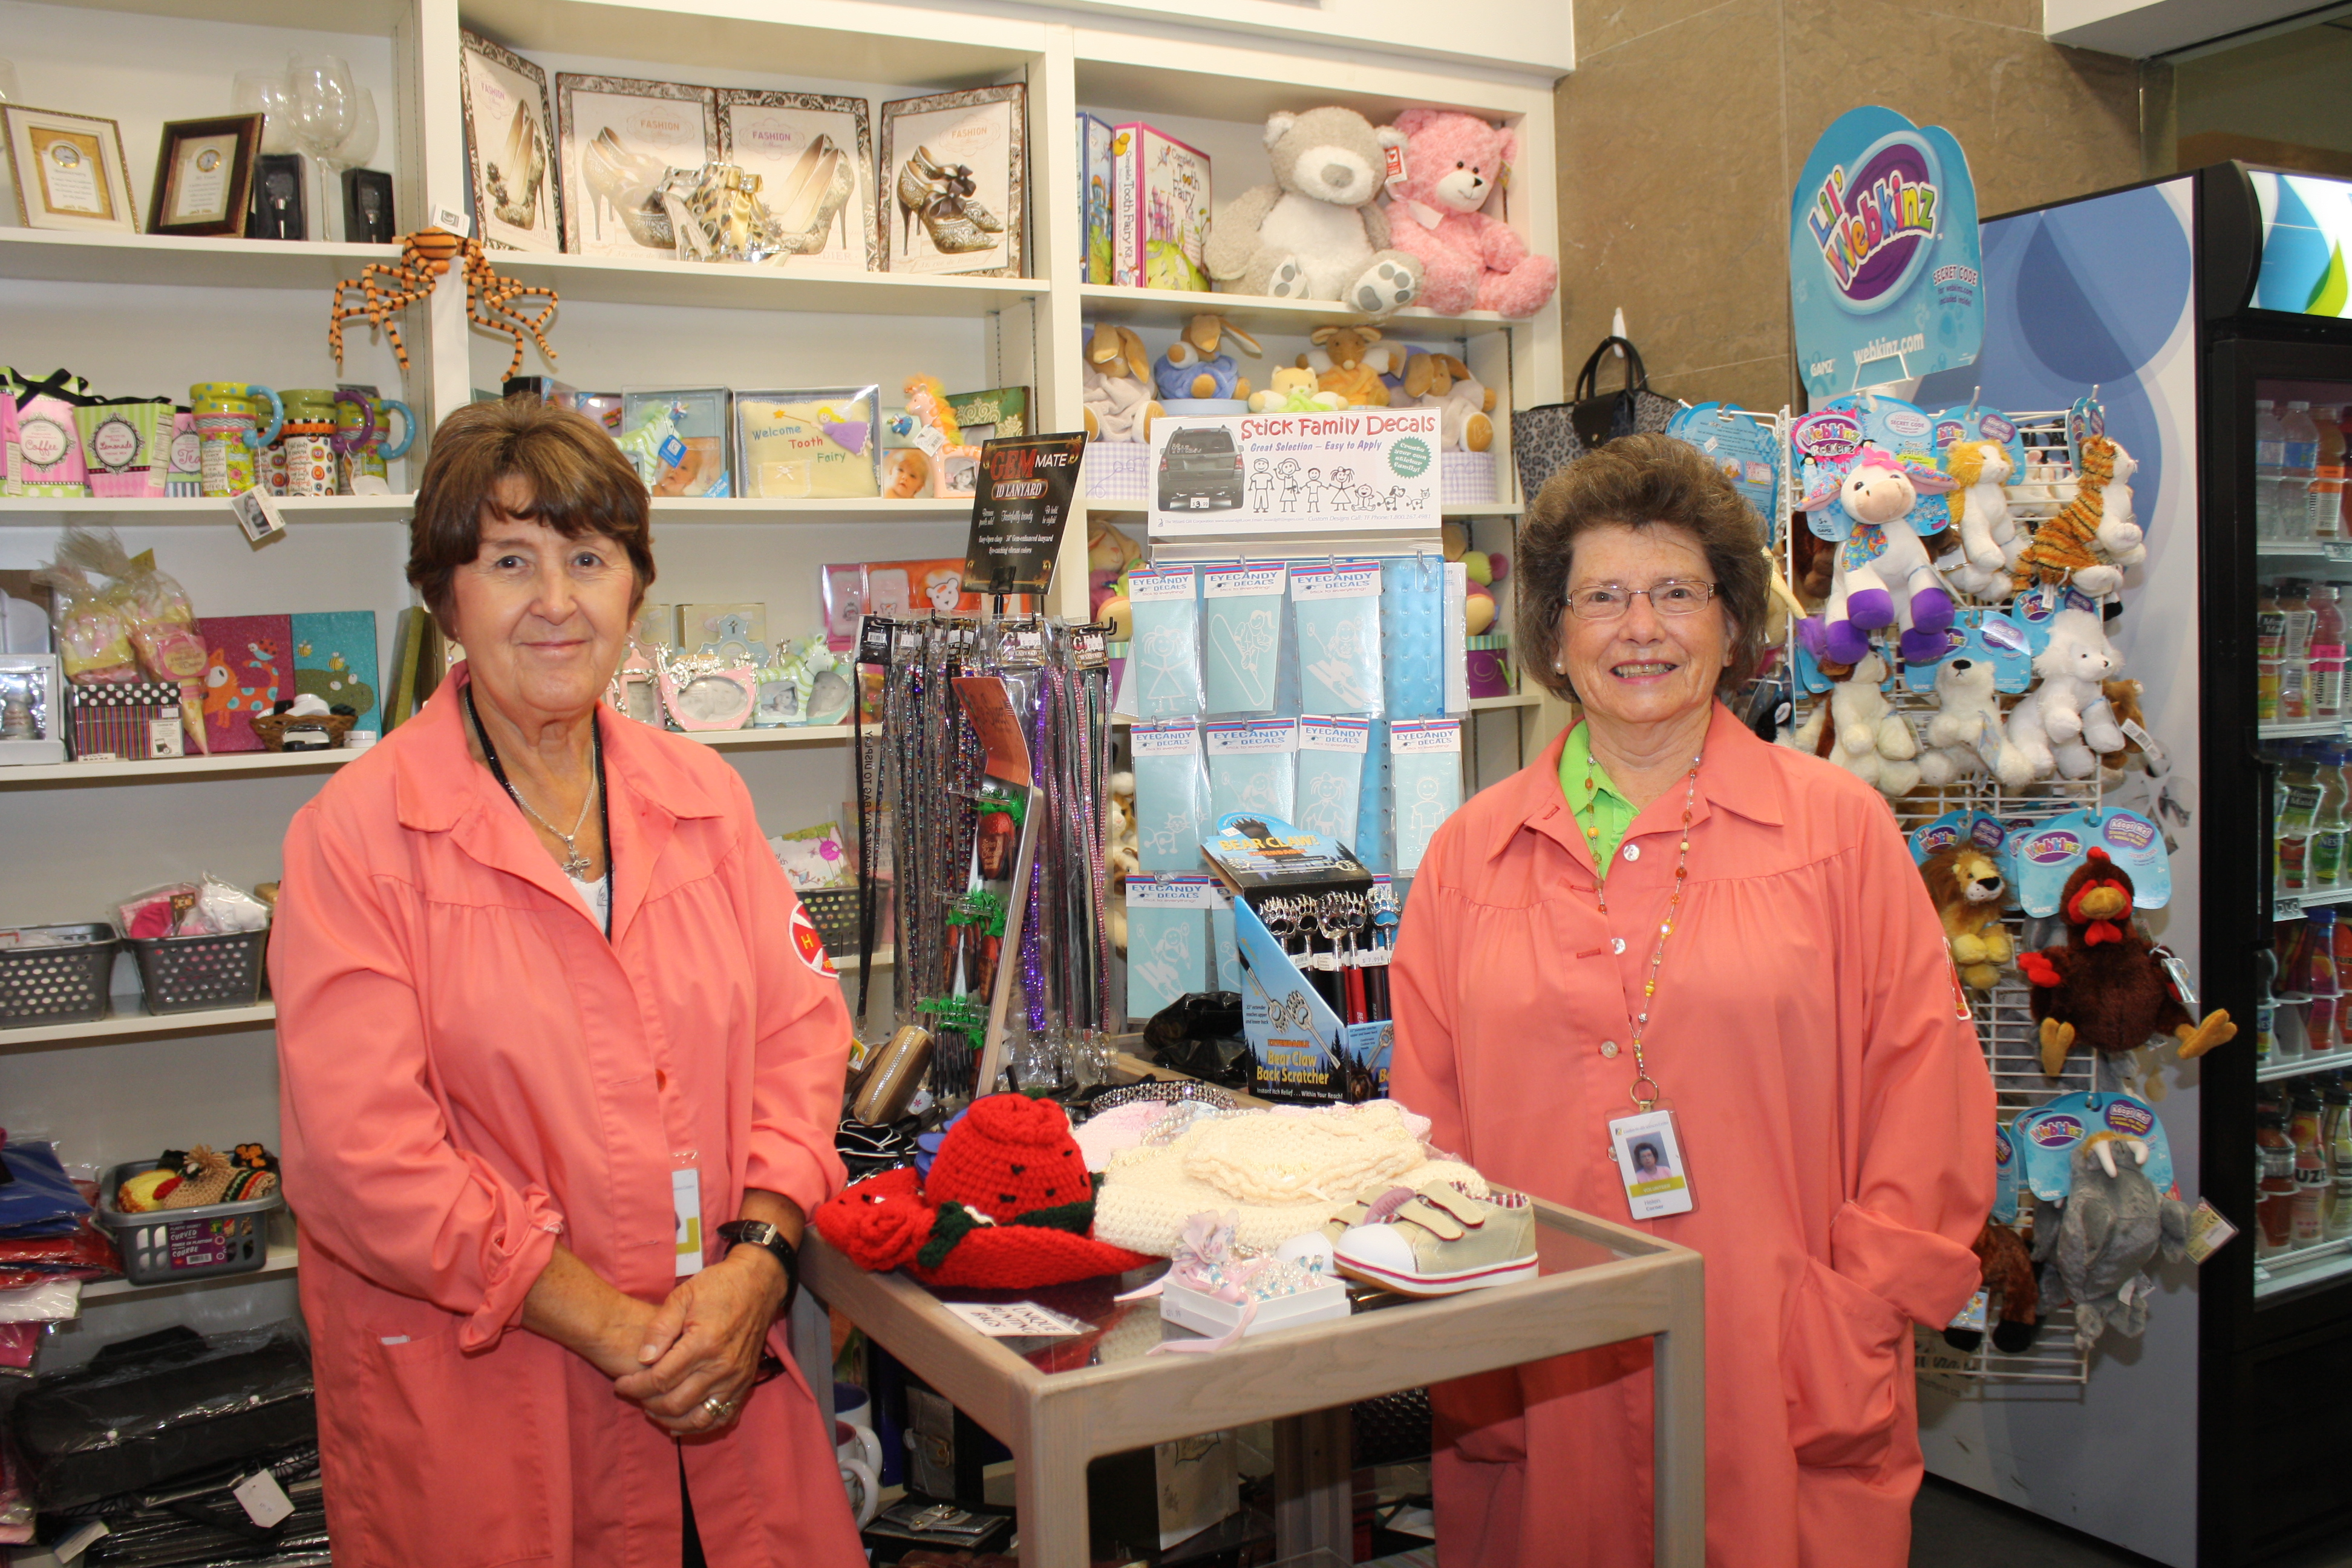 Two auxiliary volunteers smile side by side in the gift shop